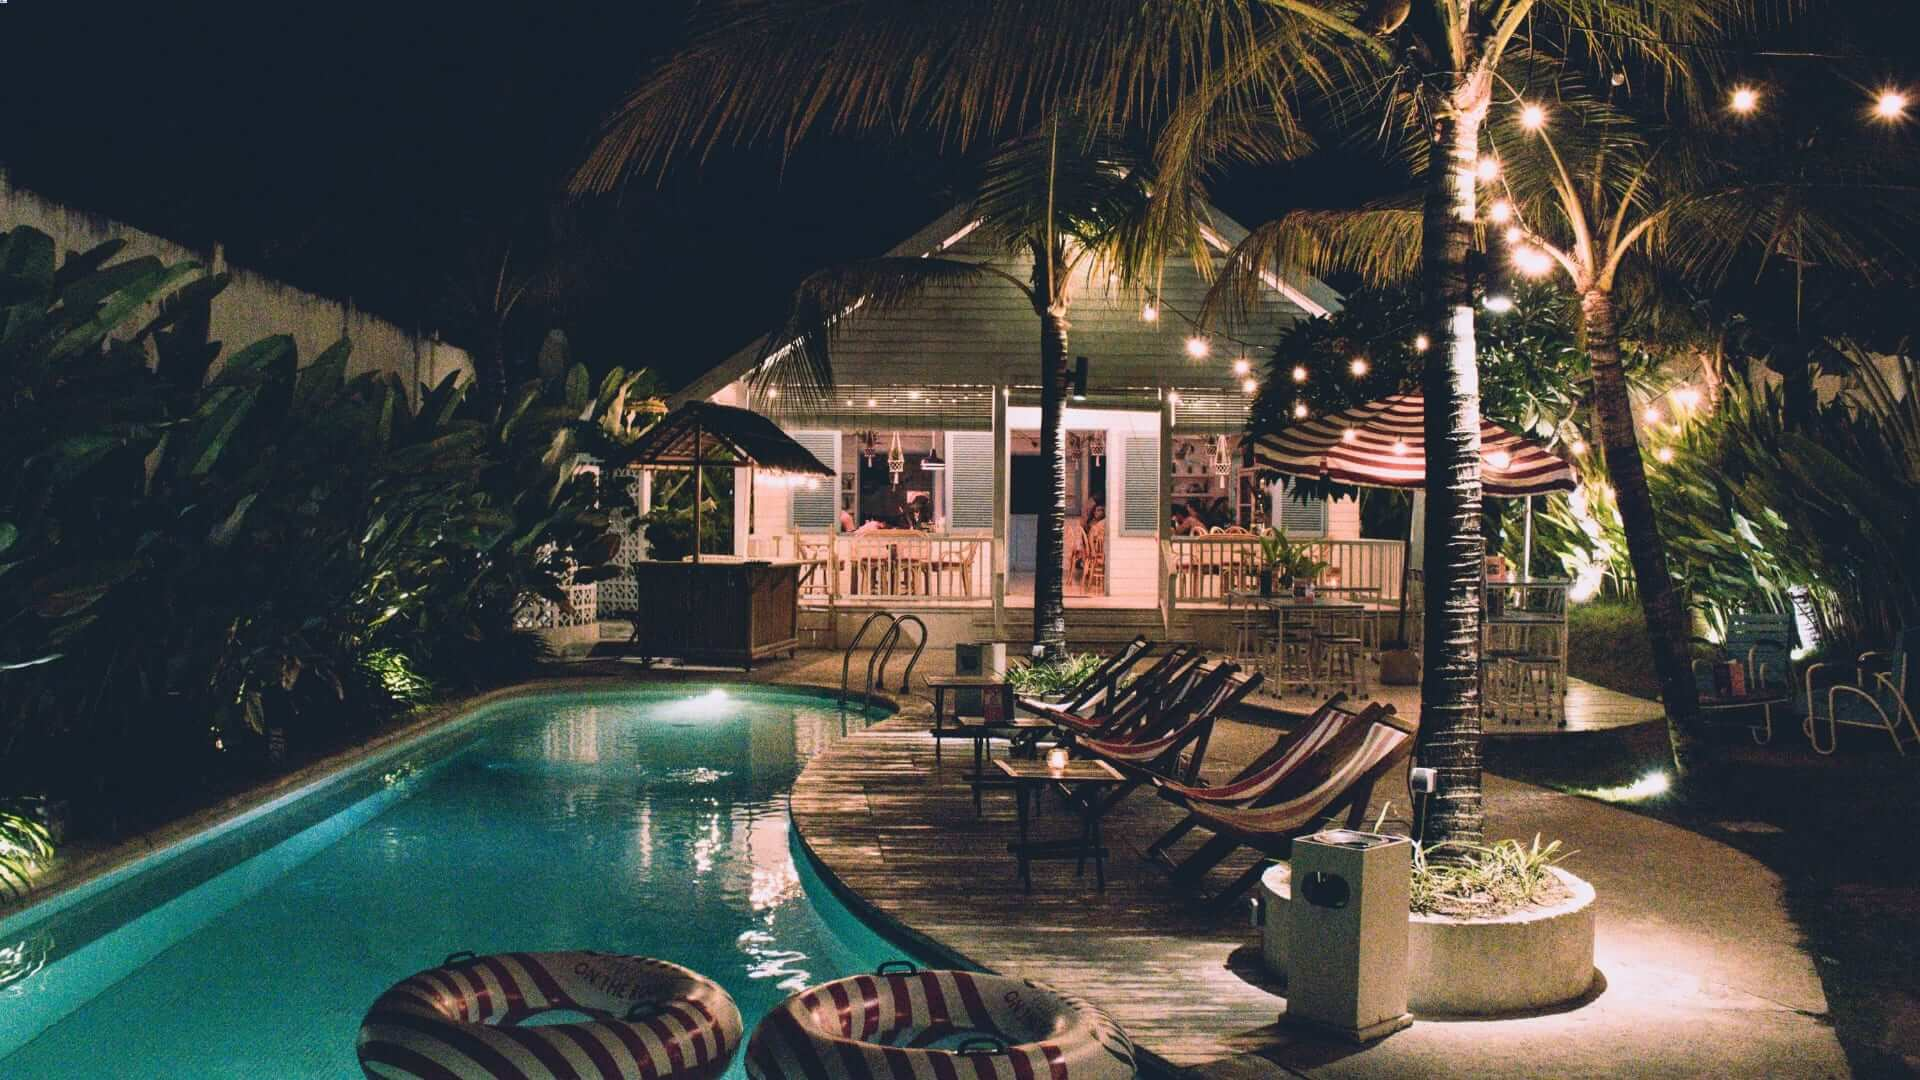 A pool with chairs next to it at a villa during night in Bali.